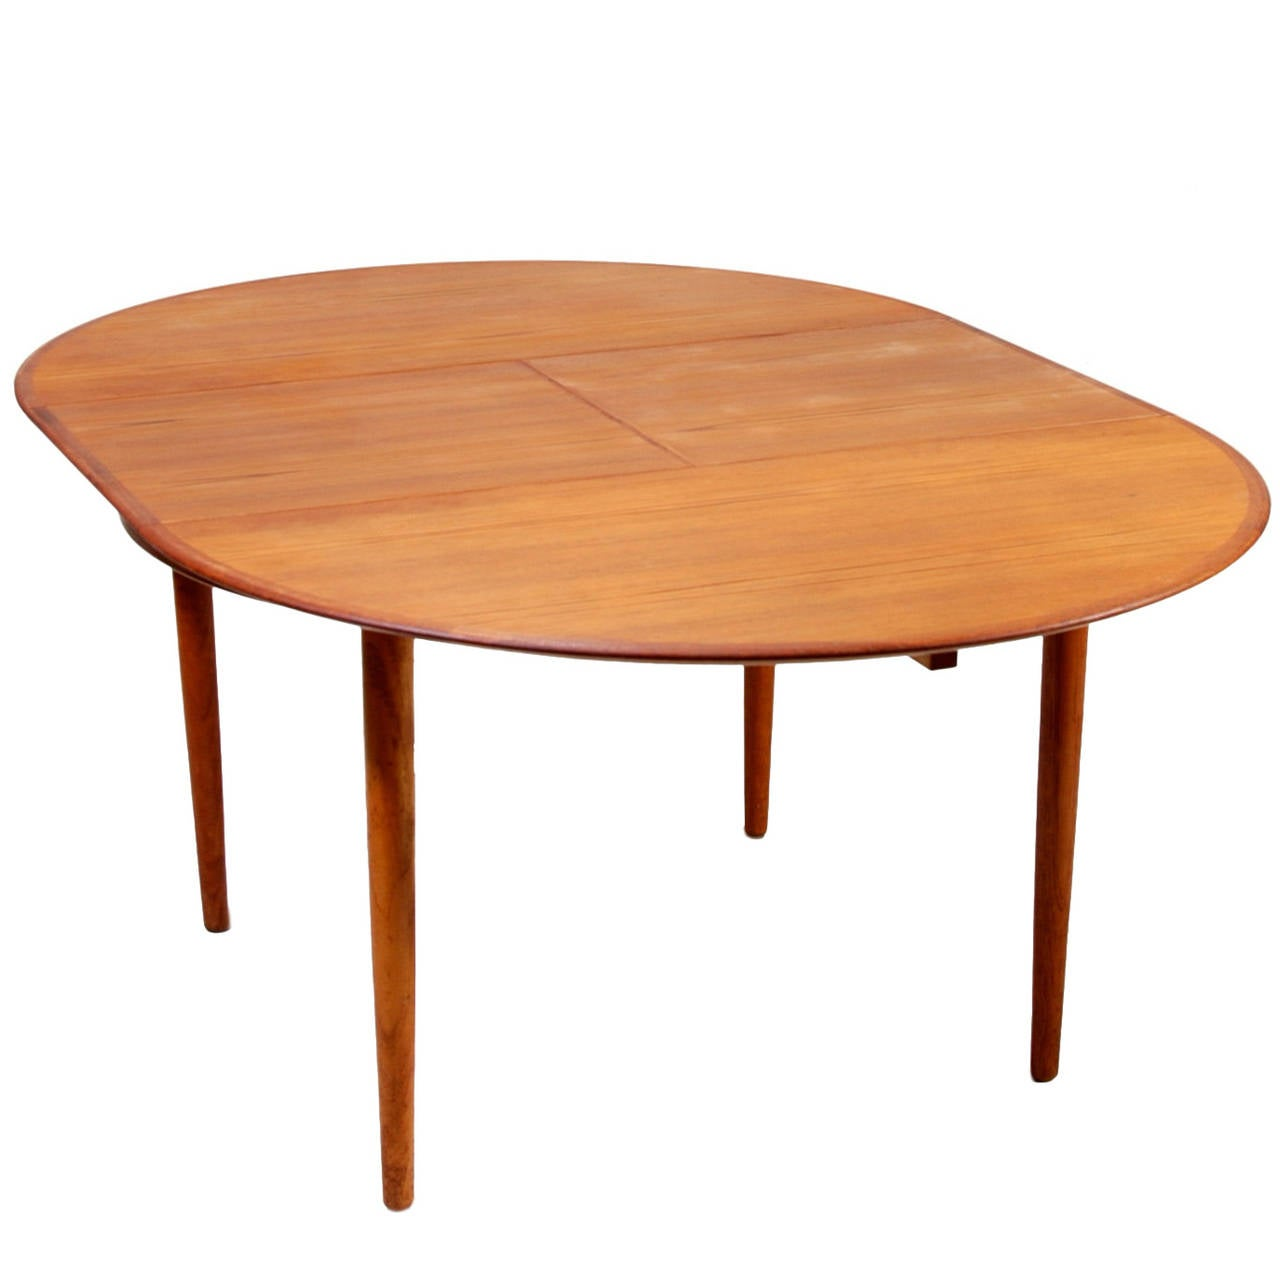 Round danish modern teak dining table by dyrlund at 1stdibs for Innovative table